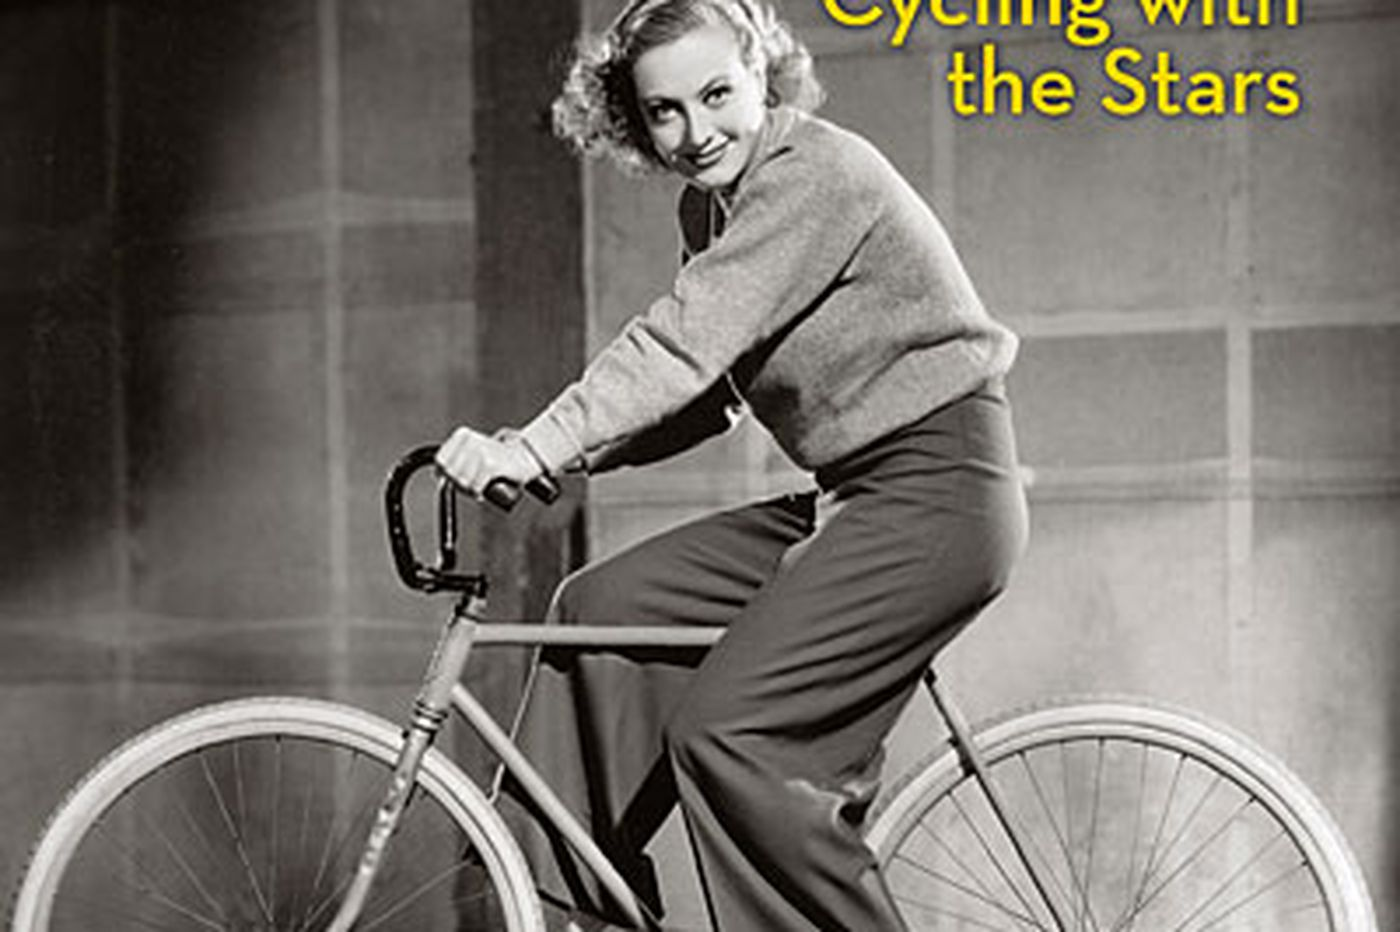 Three books for pedaling your way into summer